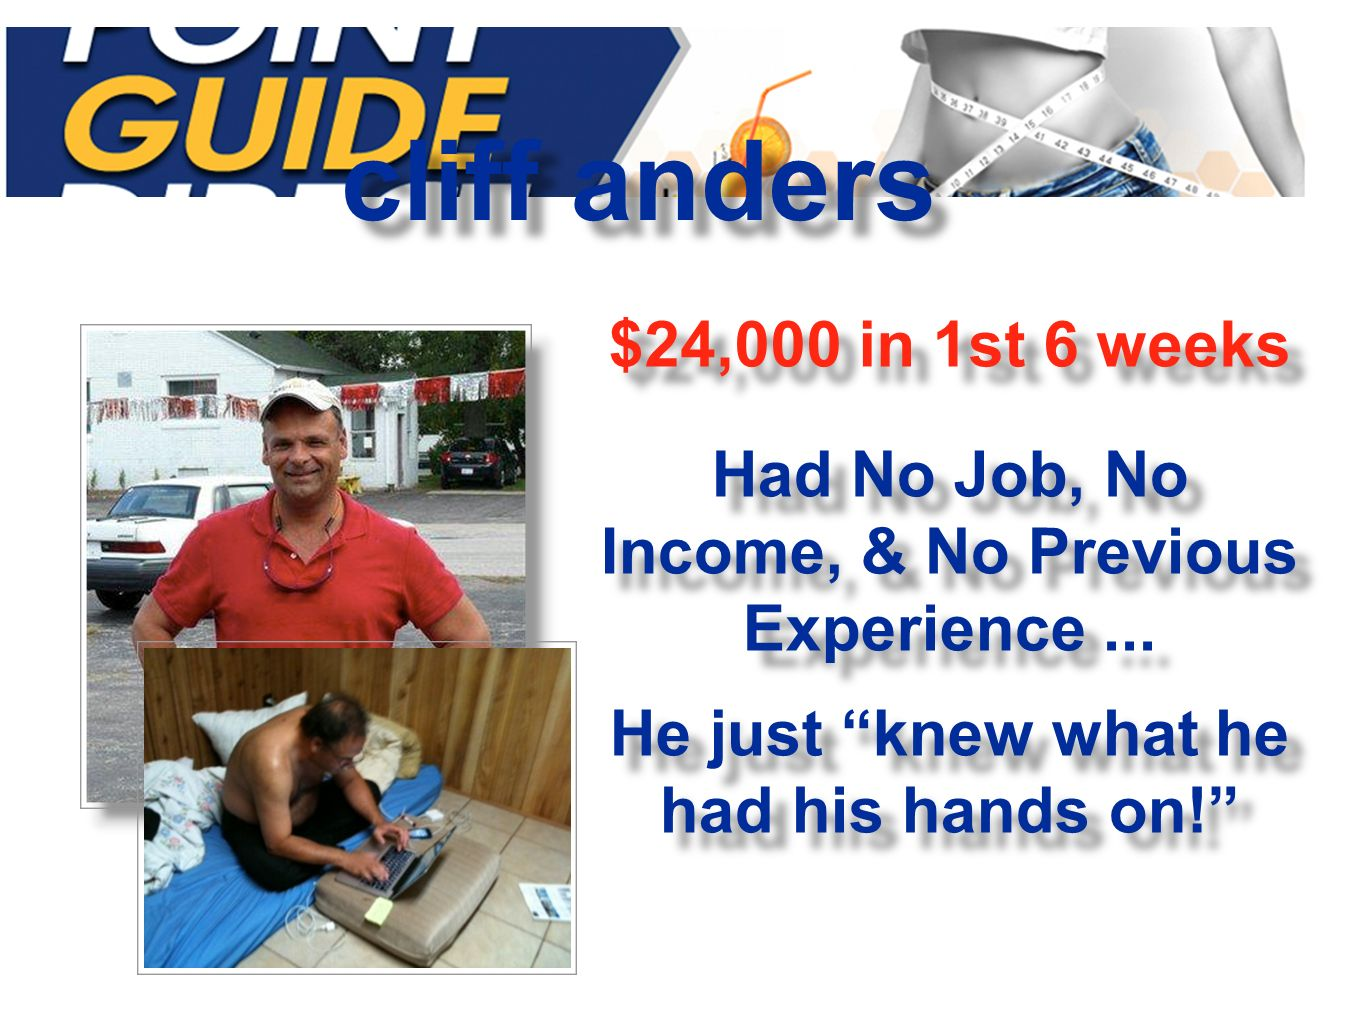 $24,000 in 1st 6 weeks cliff anders Had No Job, No Income, & No Previous Experience...